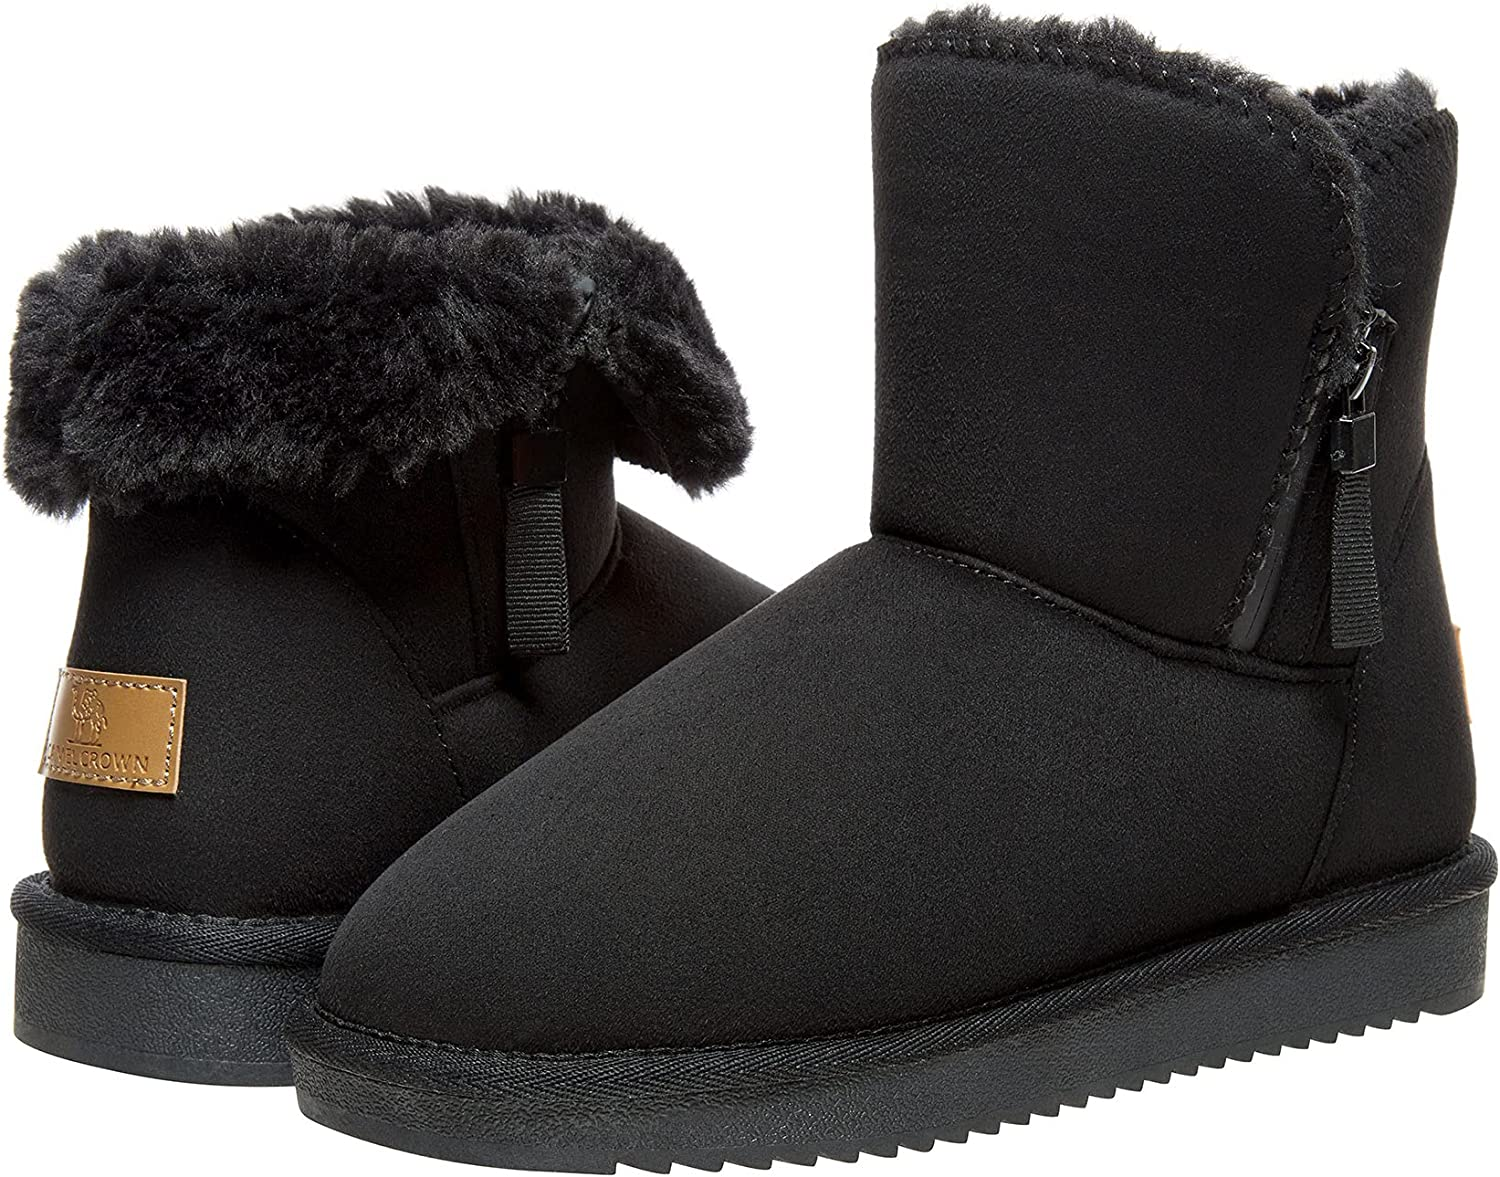   CAMEL CROWN Women's Warm Faux Fur Lined Snow Boots Mid-Calf Zipper Booties Anti-Slip Winter Boots for Cold Weather   Snow Boots